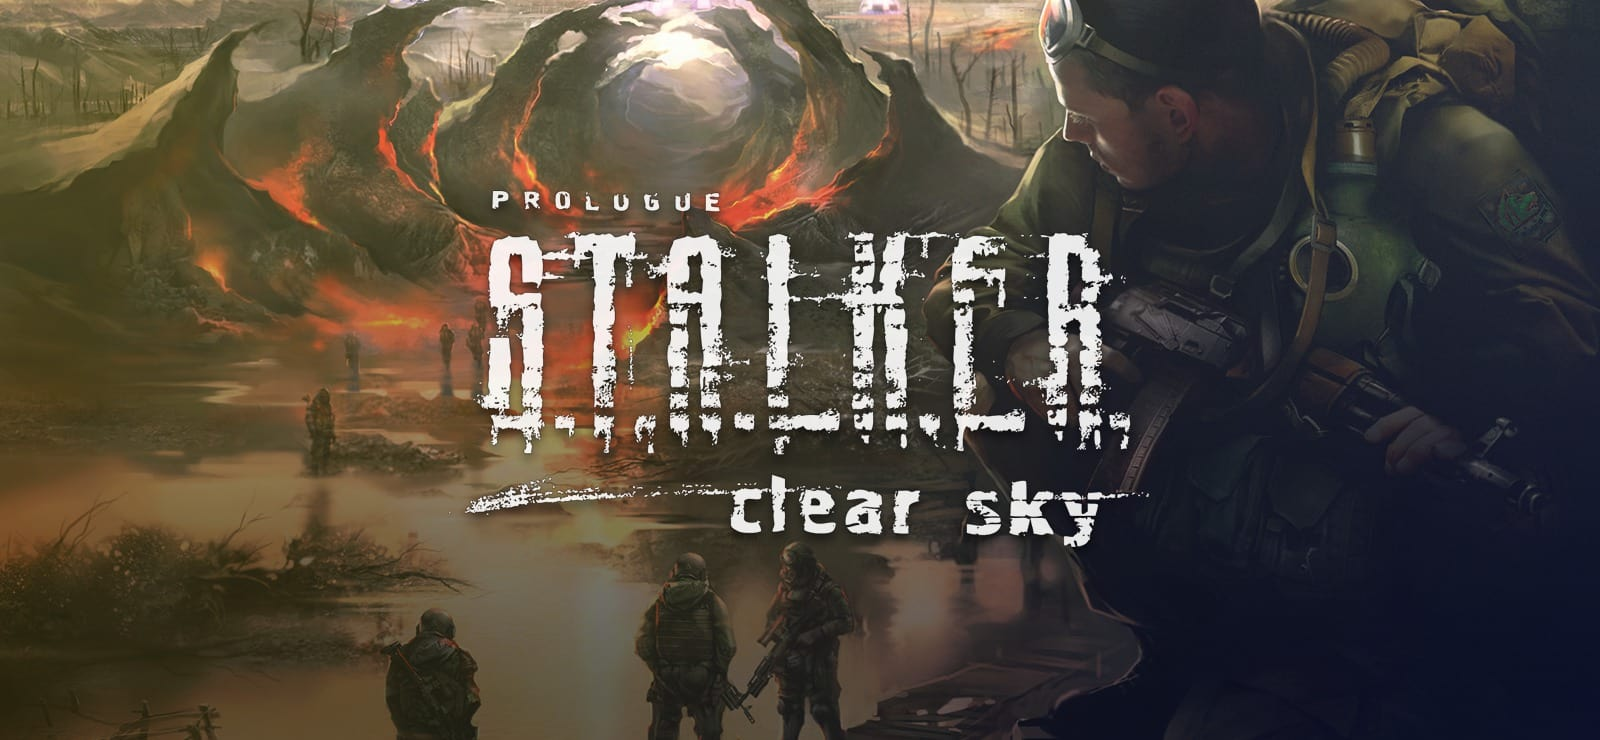 S.T.A.L.K.E.R.: Clear Sky varies-with-device